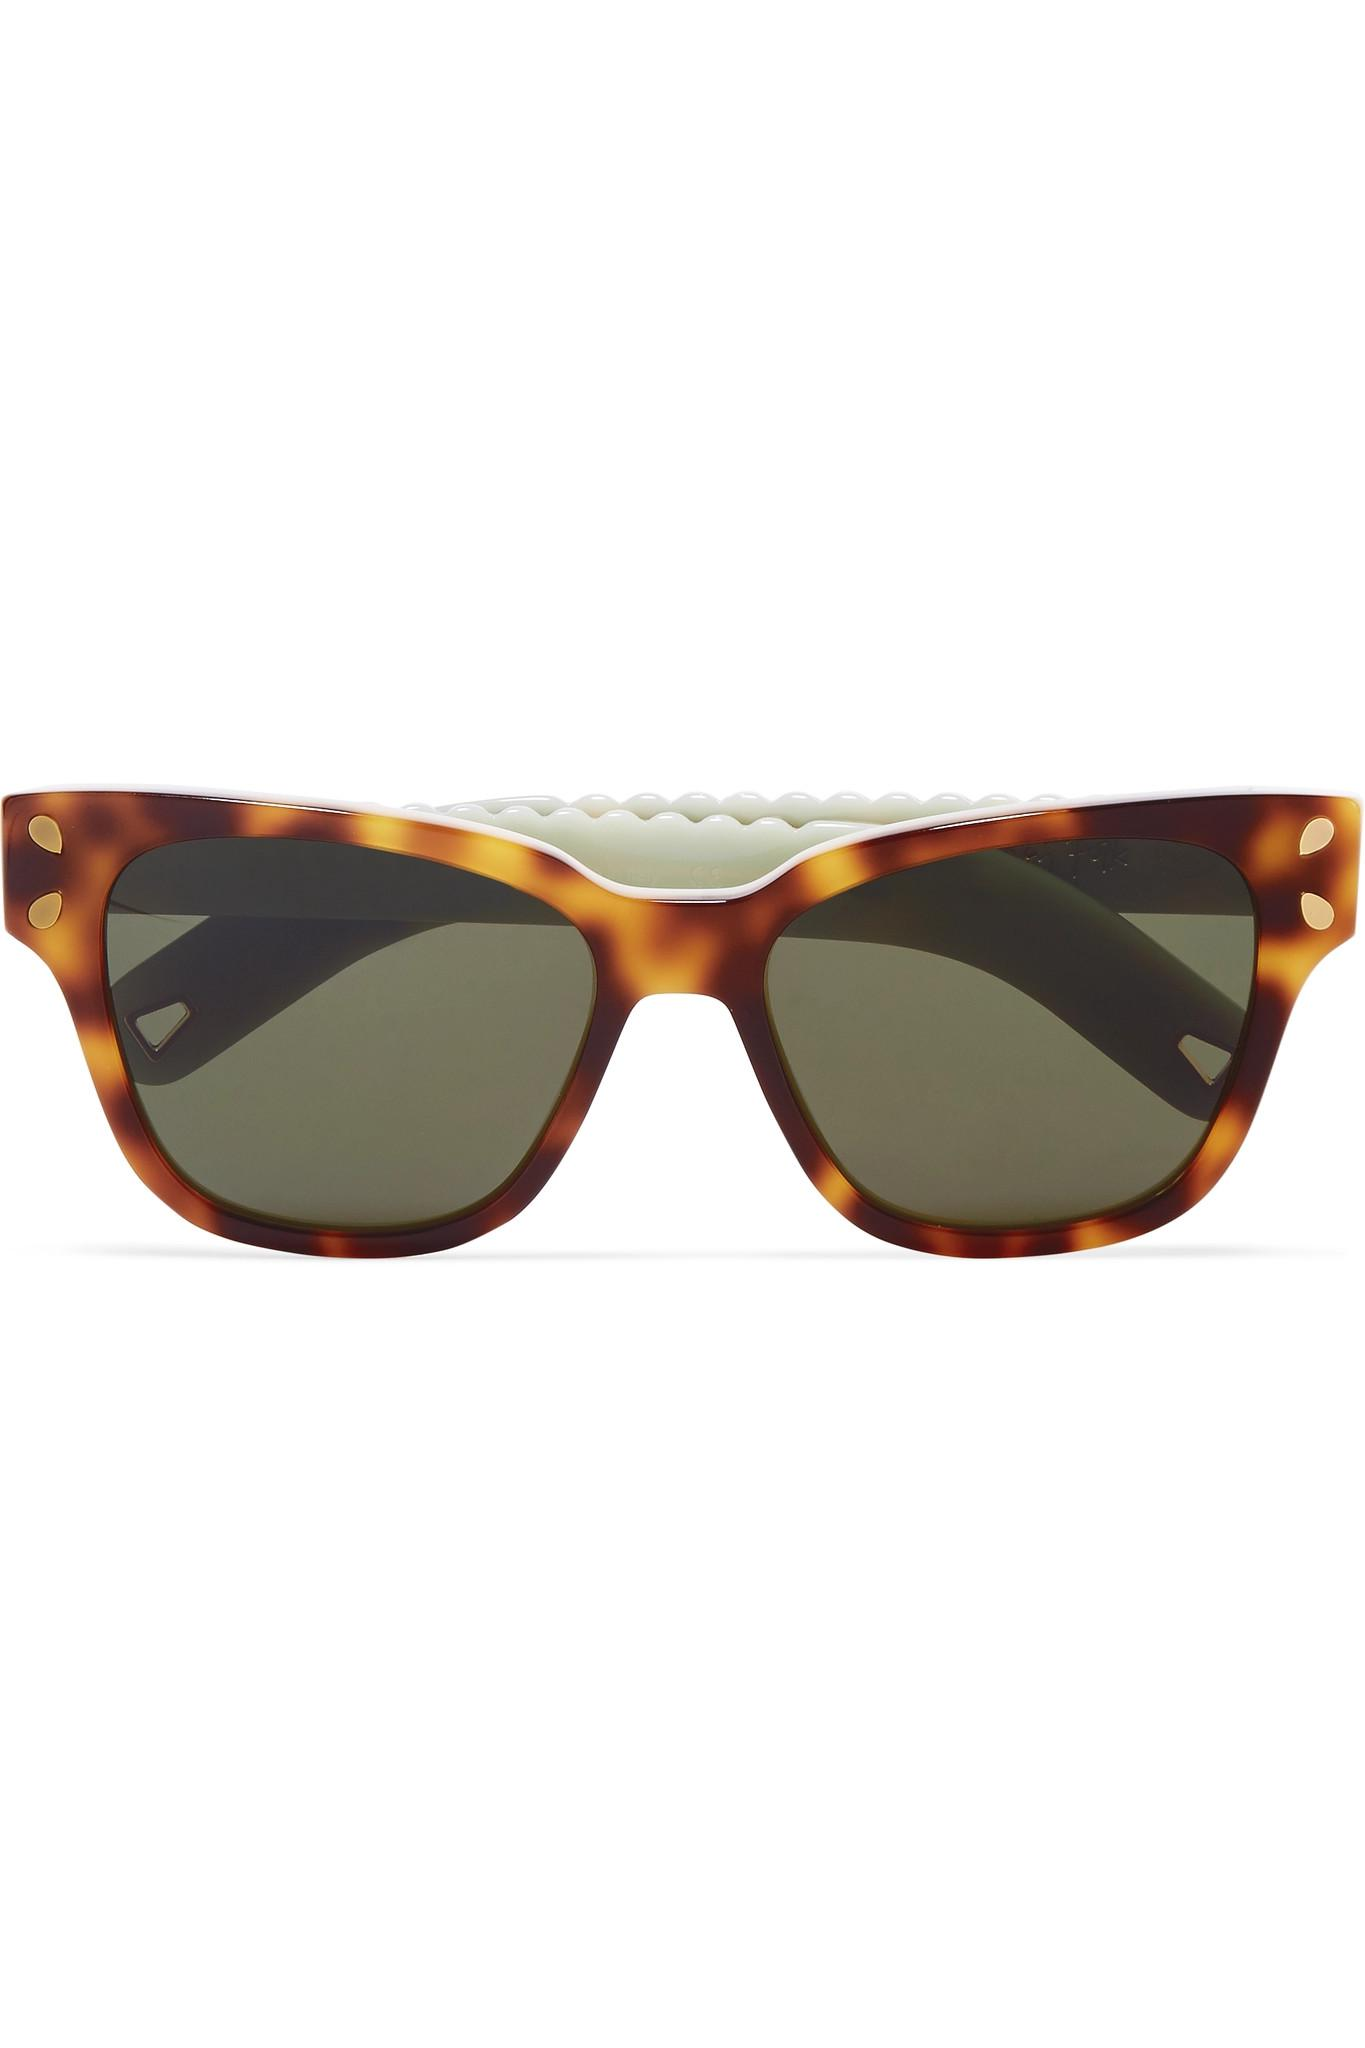 13ec35537d Lucy Folk Diving For Gold Cat-eye Tortoiseshell Acetate Sunglasses ...